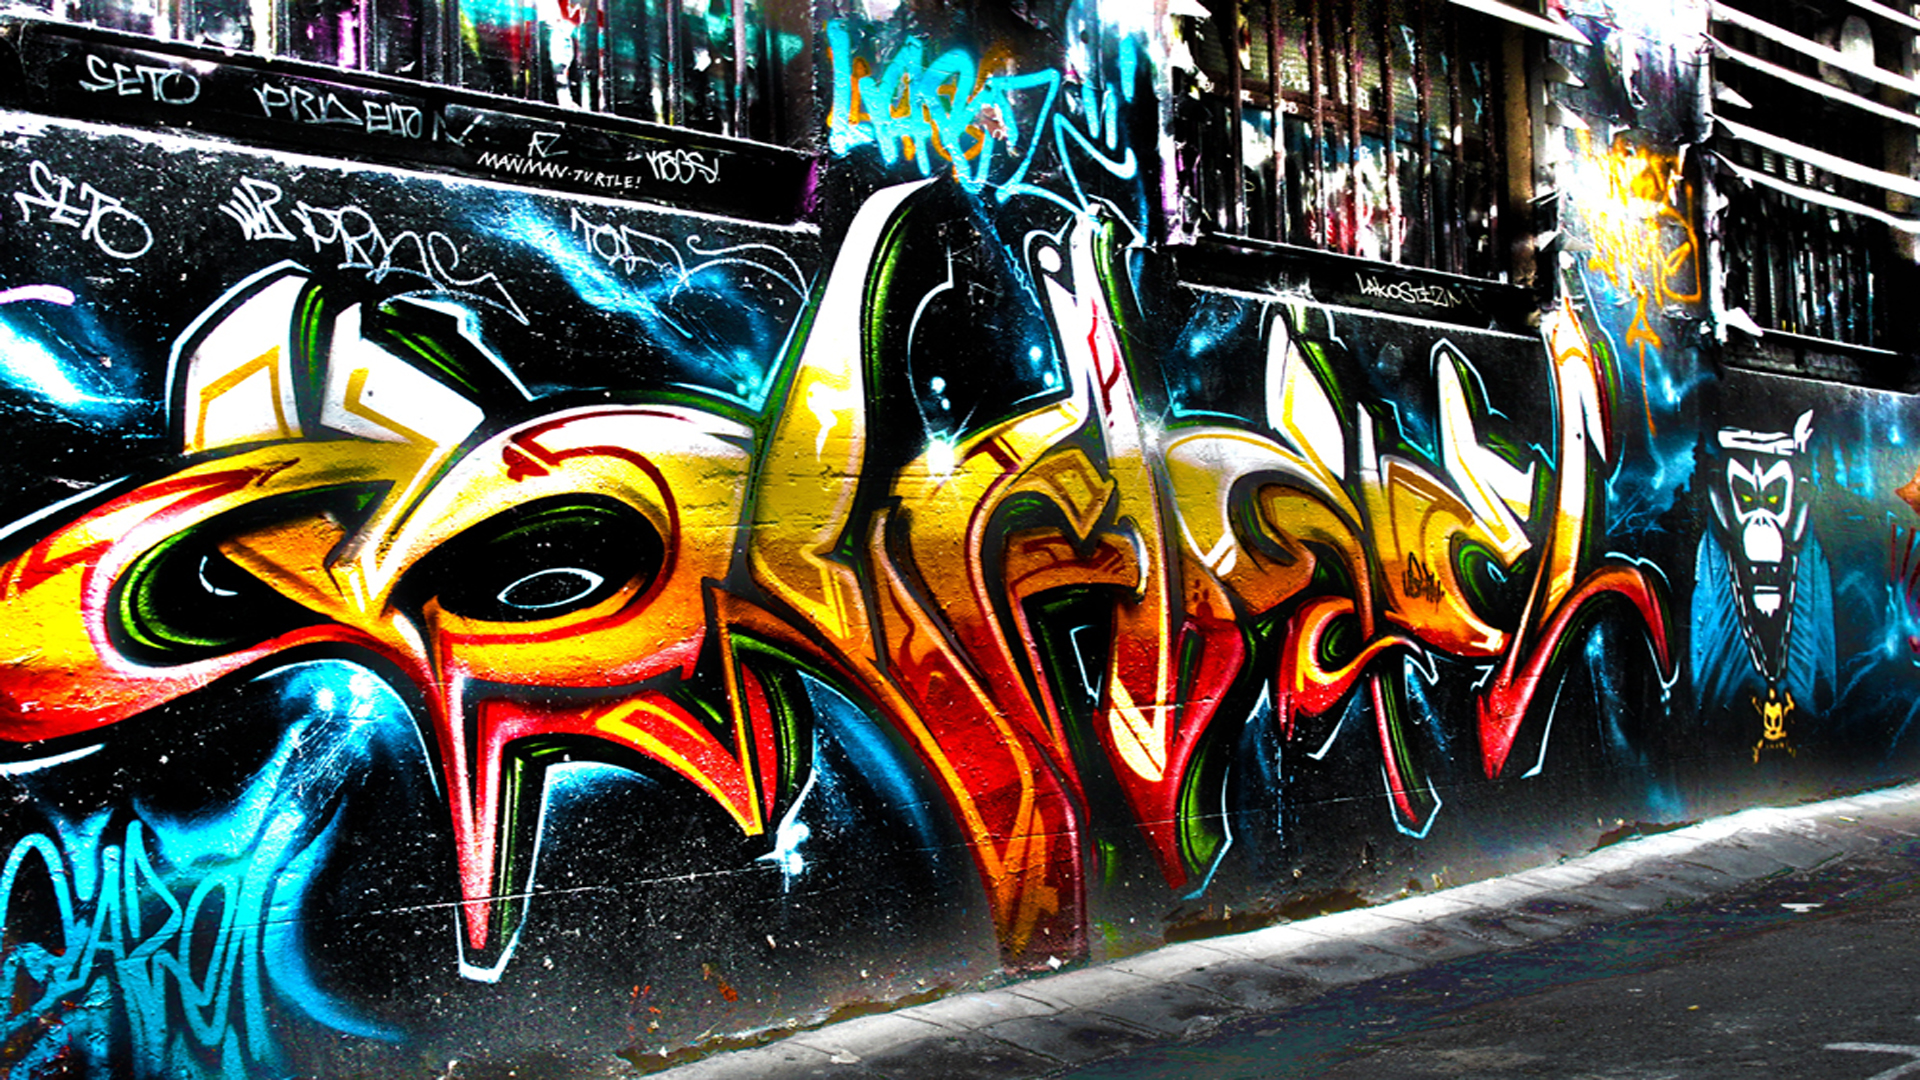 Street Graffiti on the Wall 2496.18 Kb